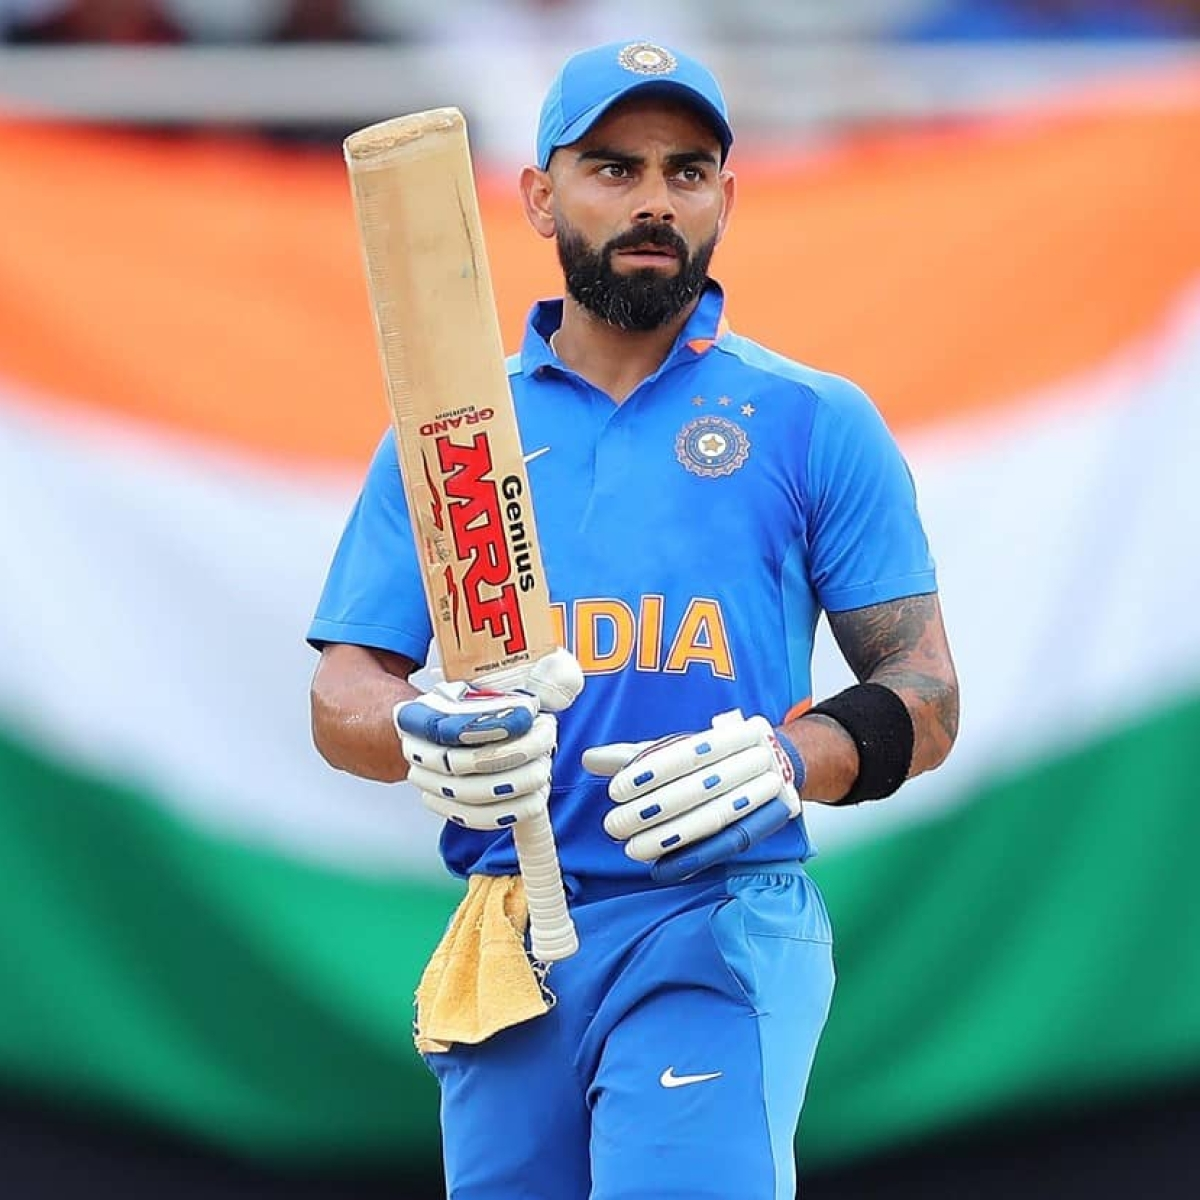 'God bless our great nation': Virat Kohli extends heartfelt wishes on India's 74th Independence Day